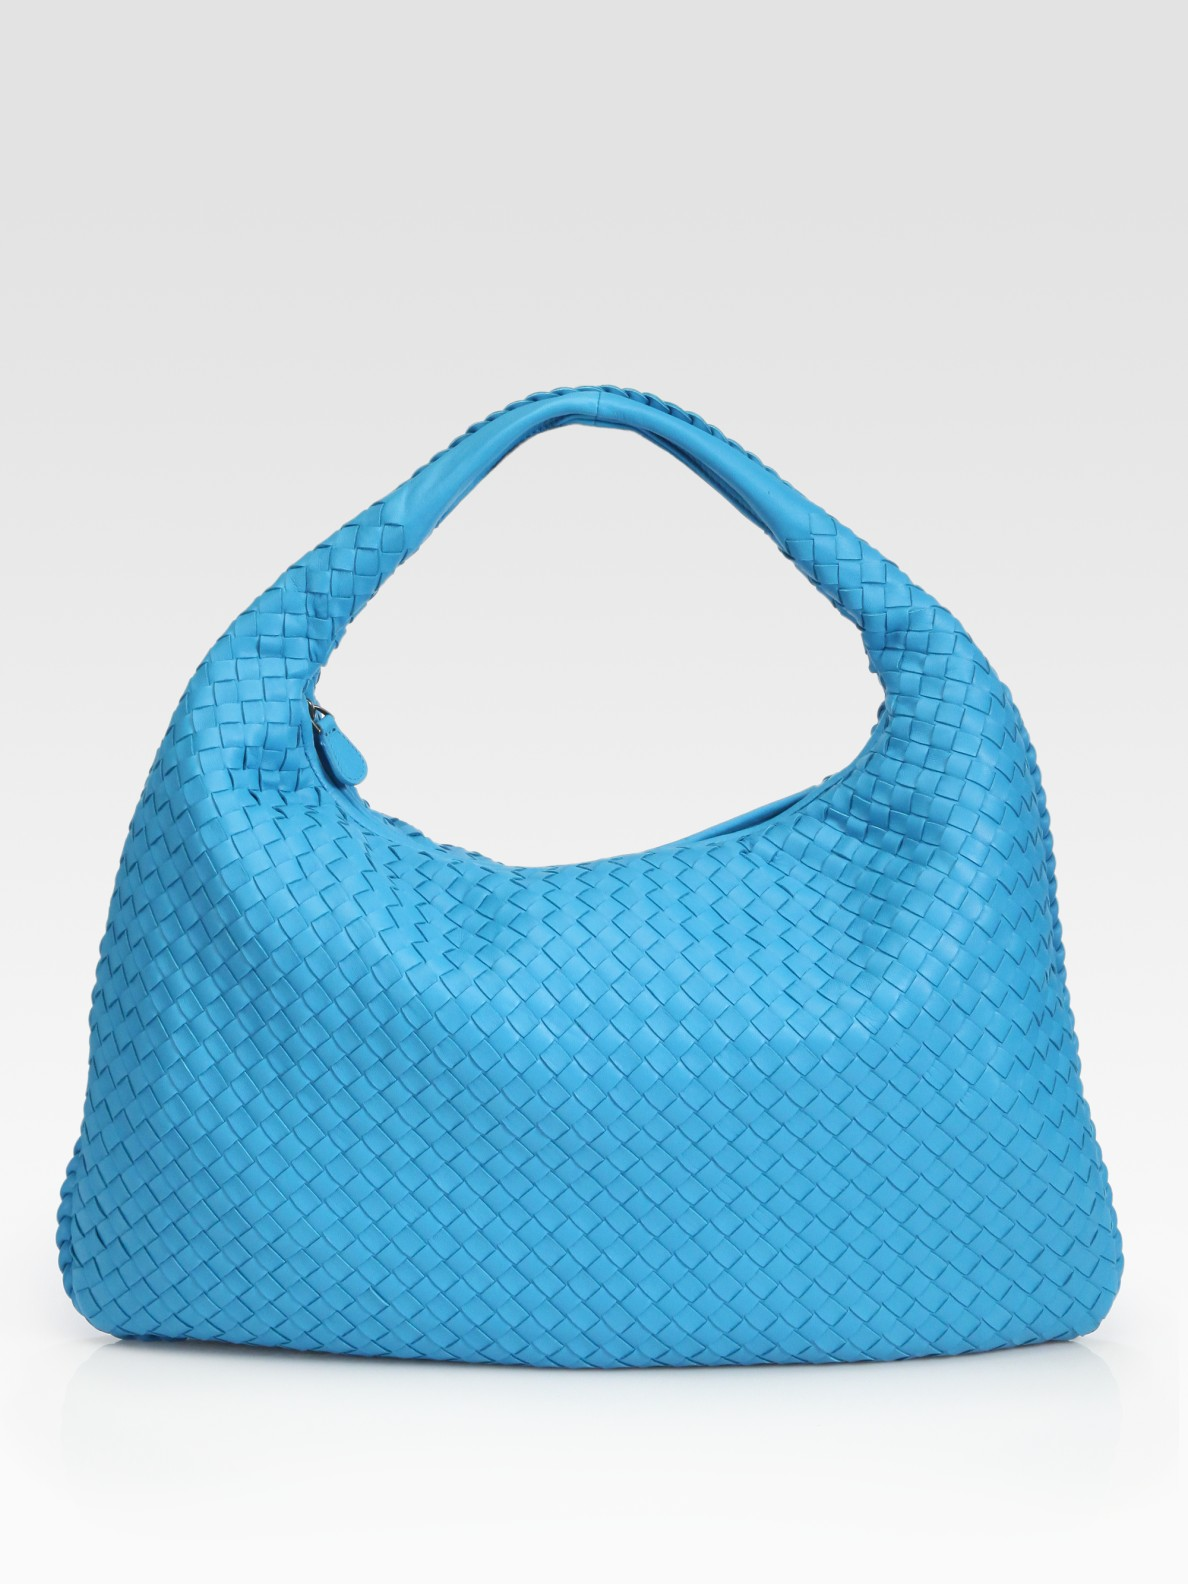 a1fd0653ccab Lyst - Bottega veneta Large Woven Hobo in Blue